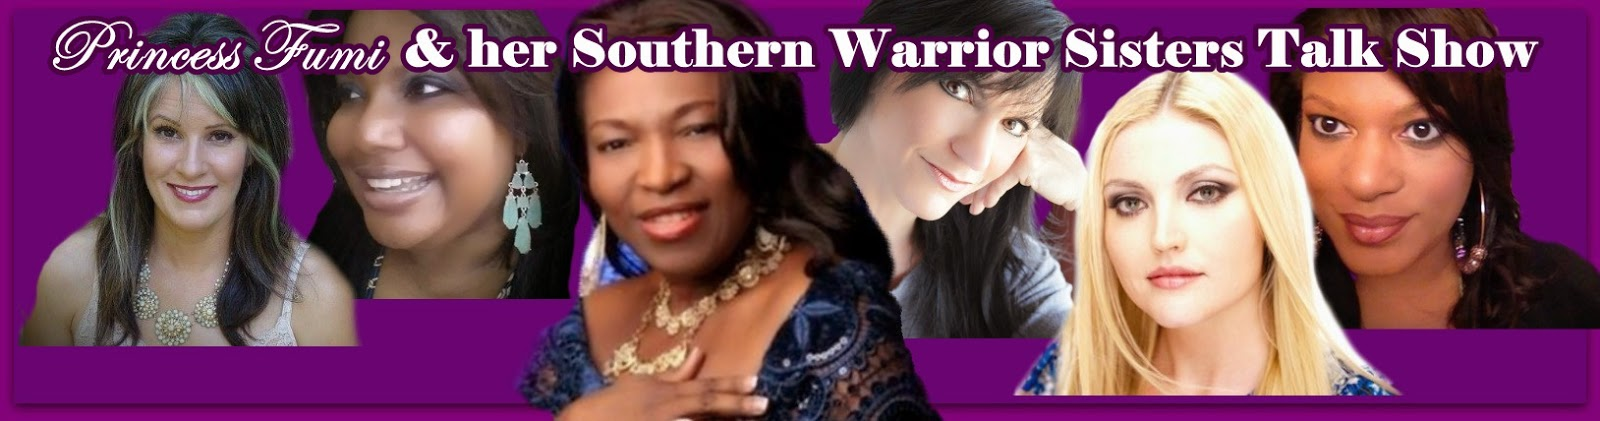 http://www.blogtalkradio.com/princessfumiandhersouthernwarriorsisters